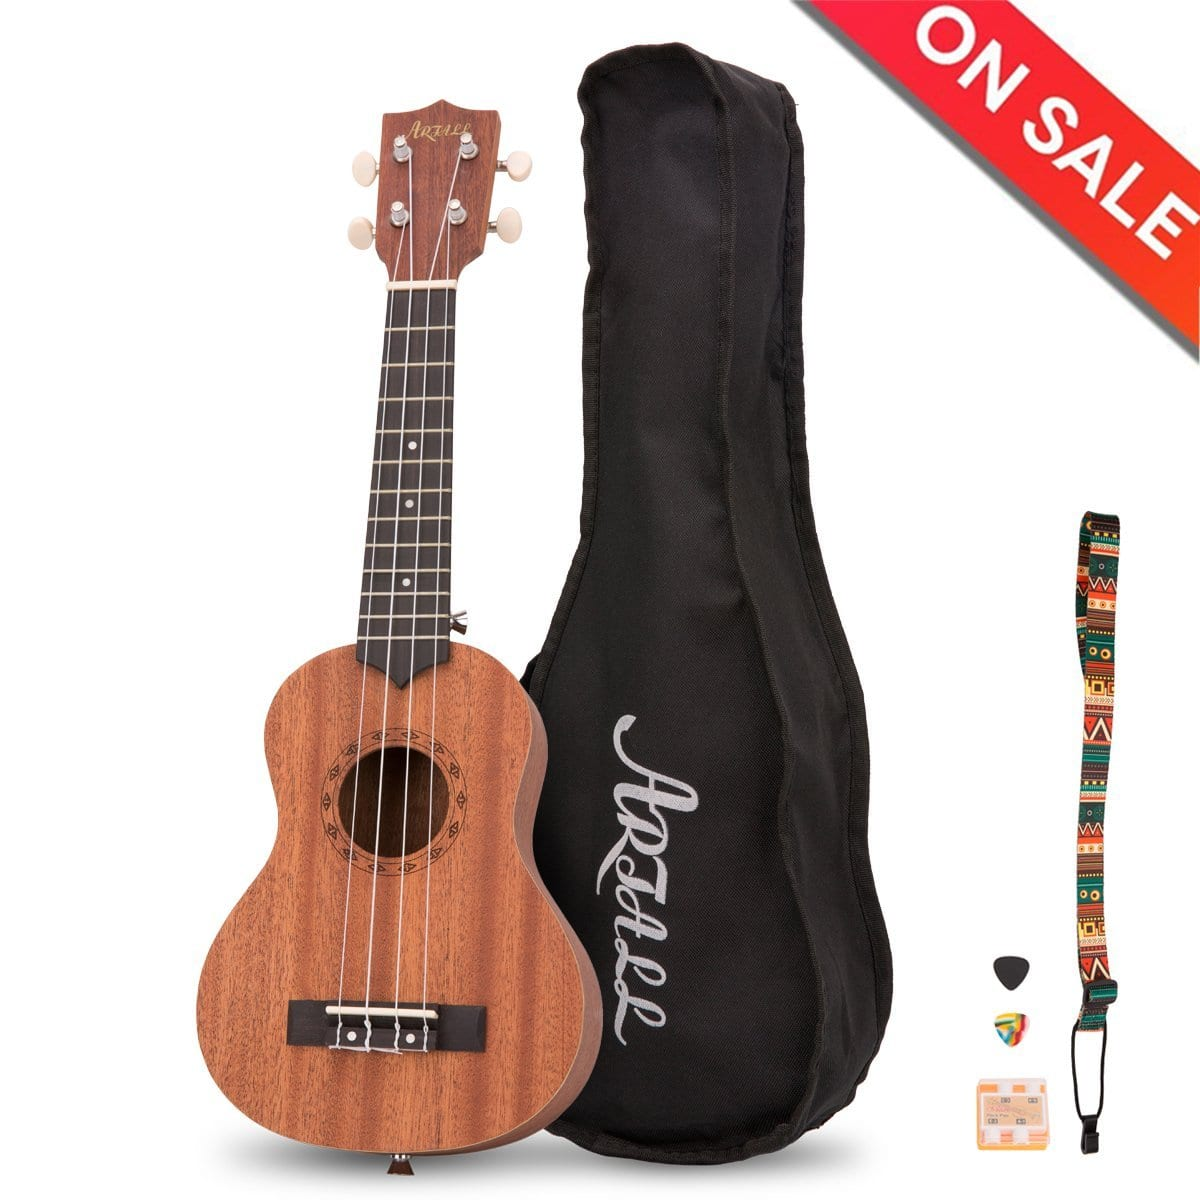 Artall 21 Inch Handcrafted Solid Wood Soprano Ukulele & accessories $23.99 + Free Prime Shipping